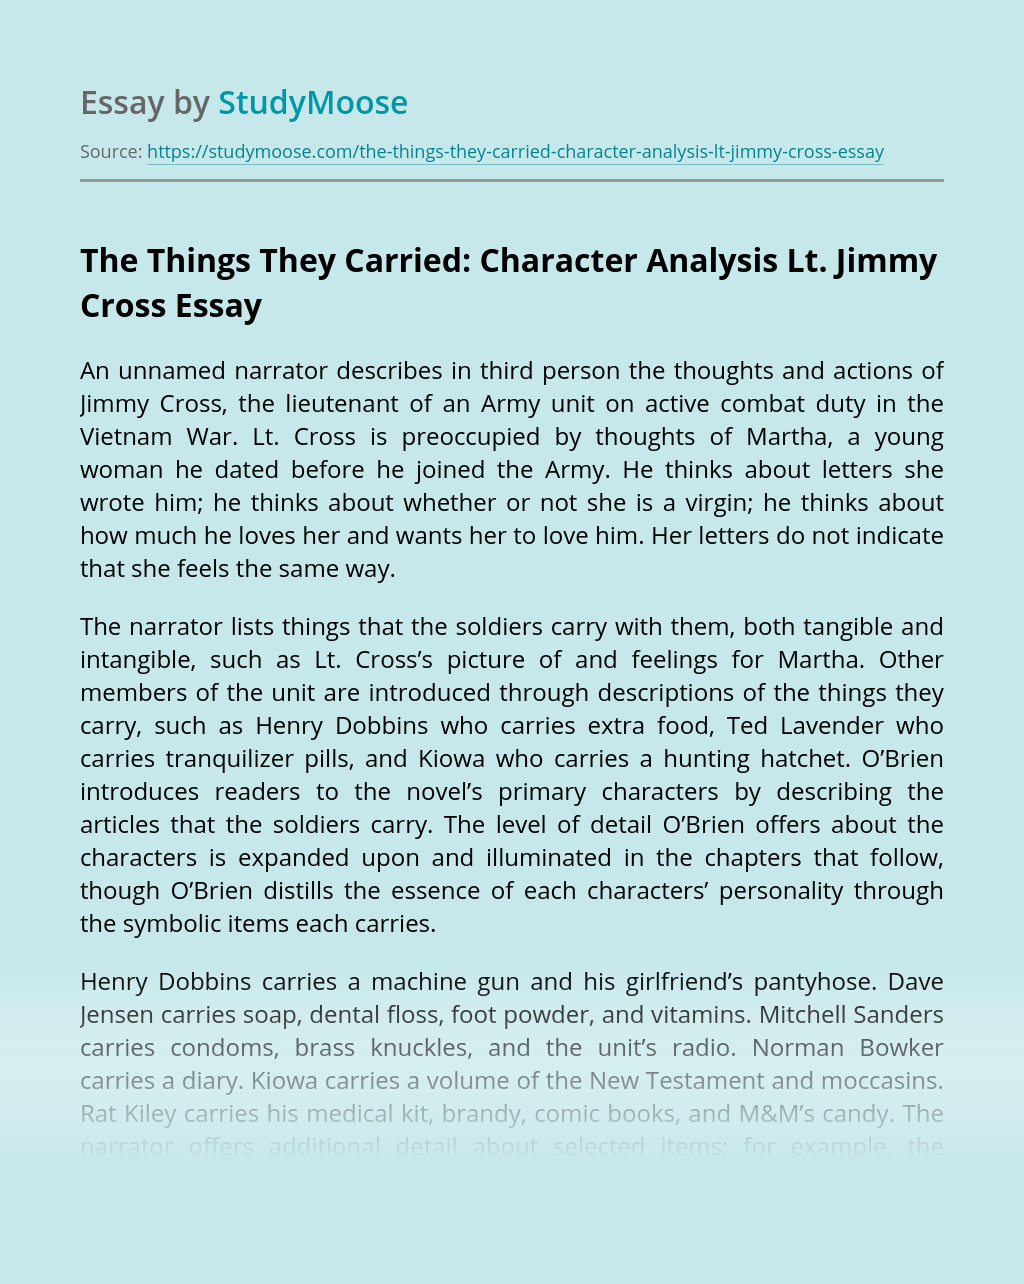 The Things They Carried: Character Analysis Lt. Jimmy Cross